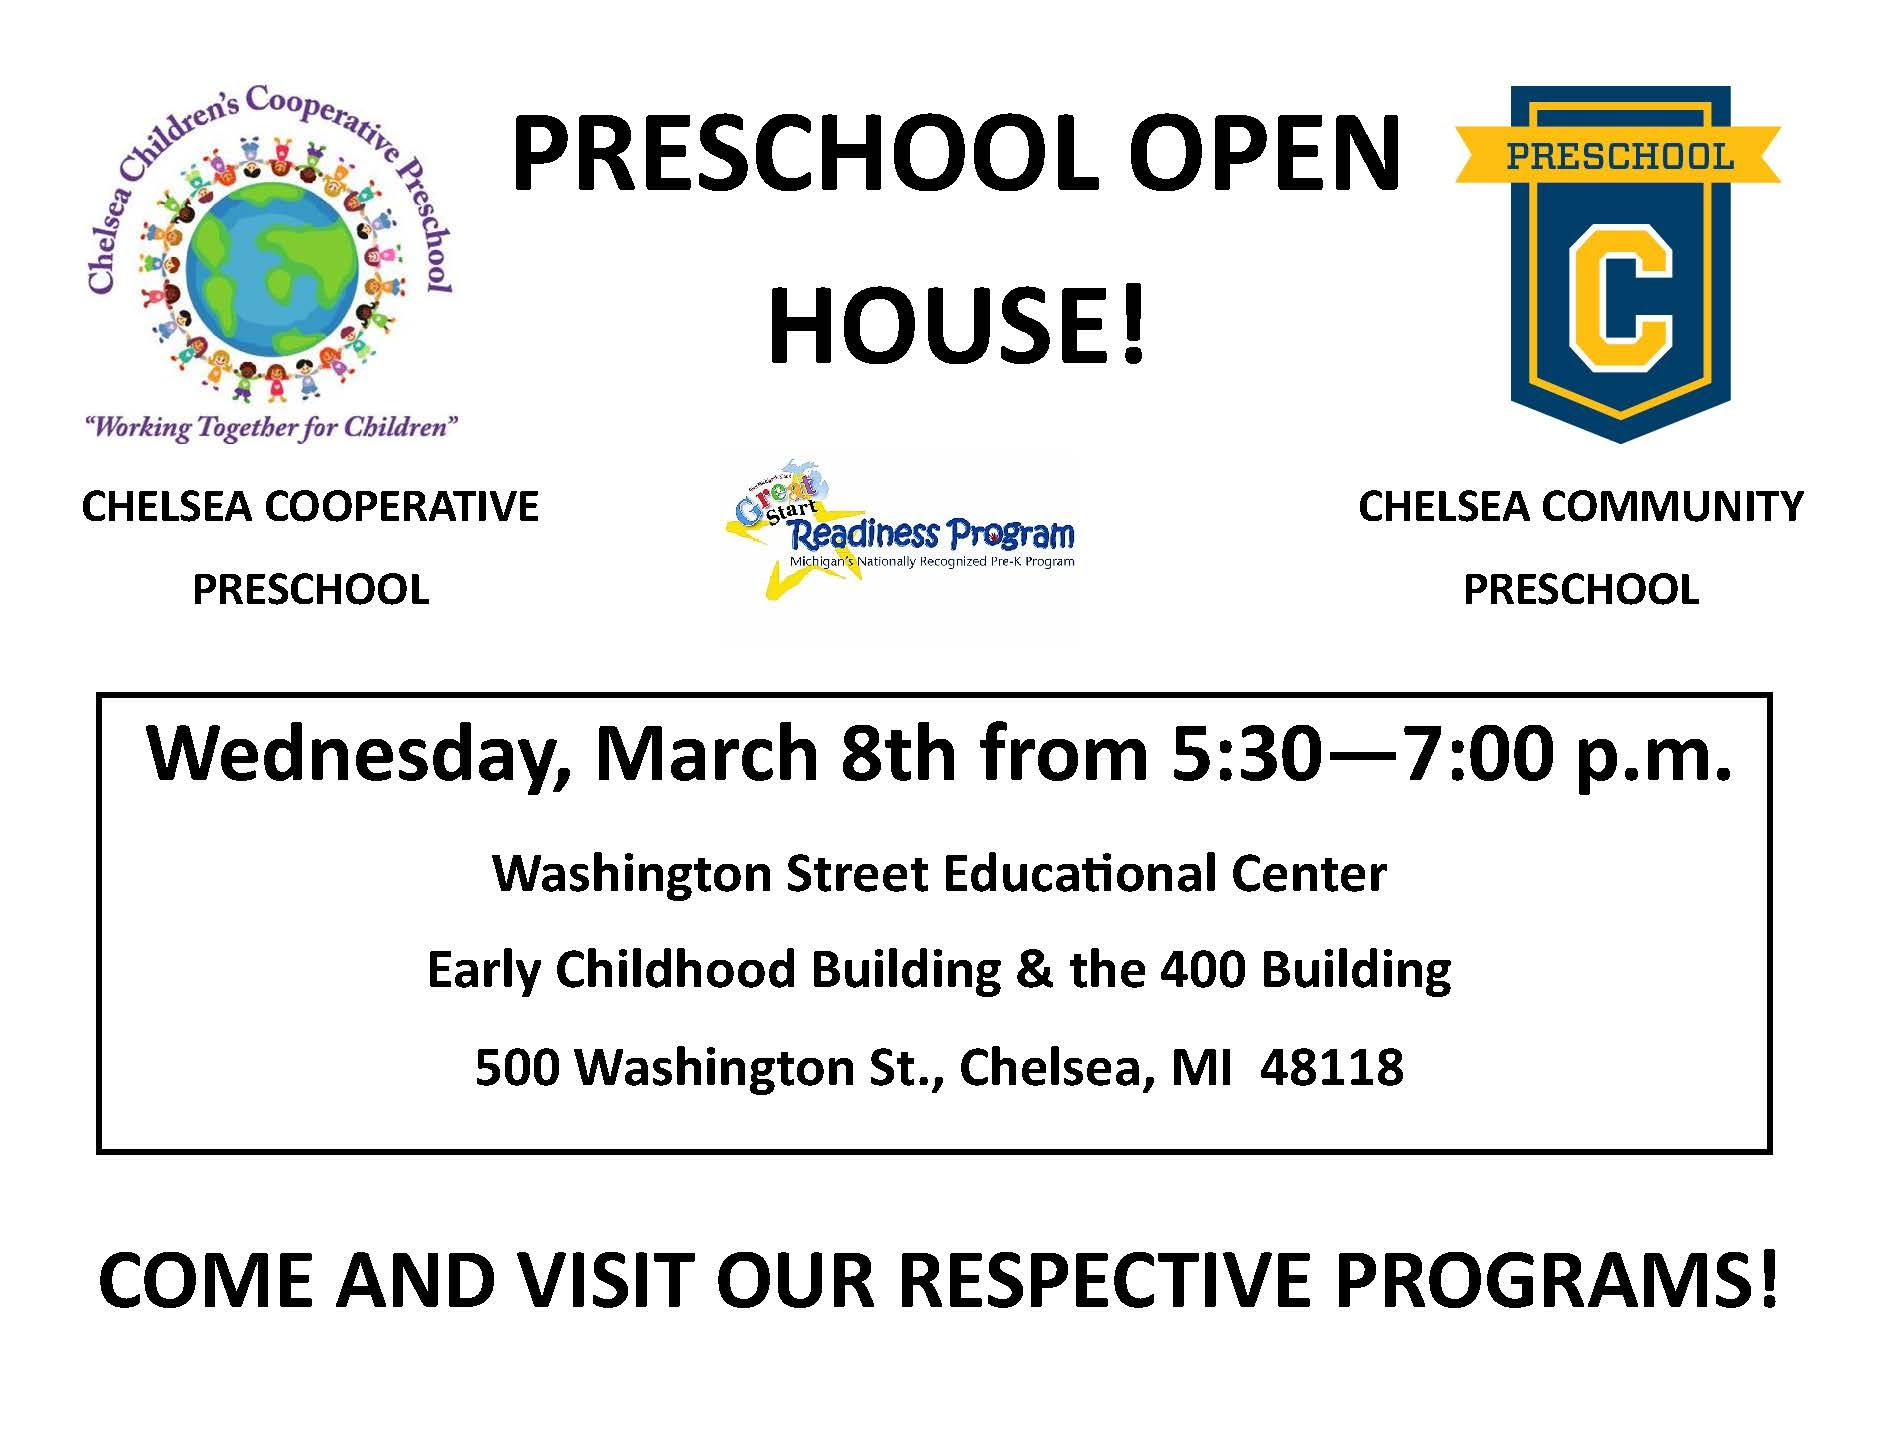 Open house flier with time and places of joint open house.  March 8th from 5:30 - 7:00 pm 500 Washington Street.  Has logo of each school